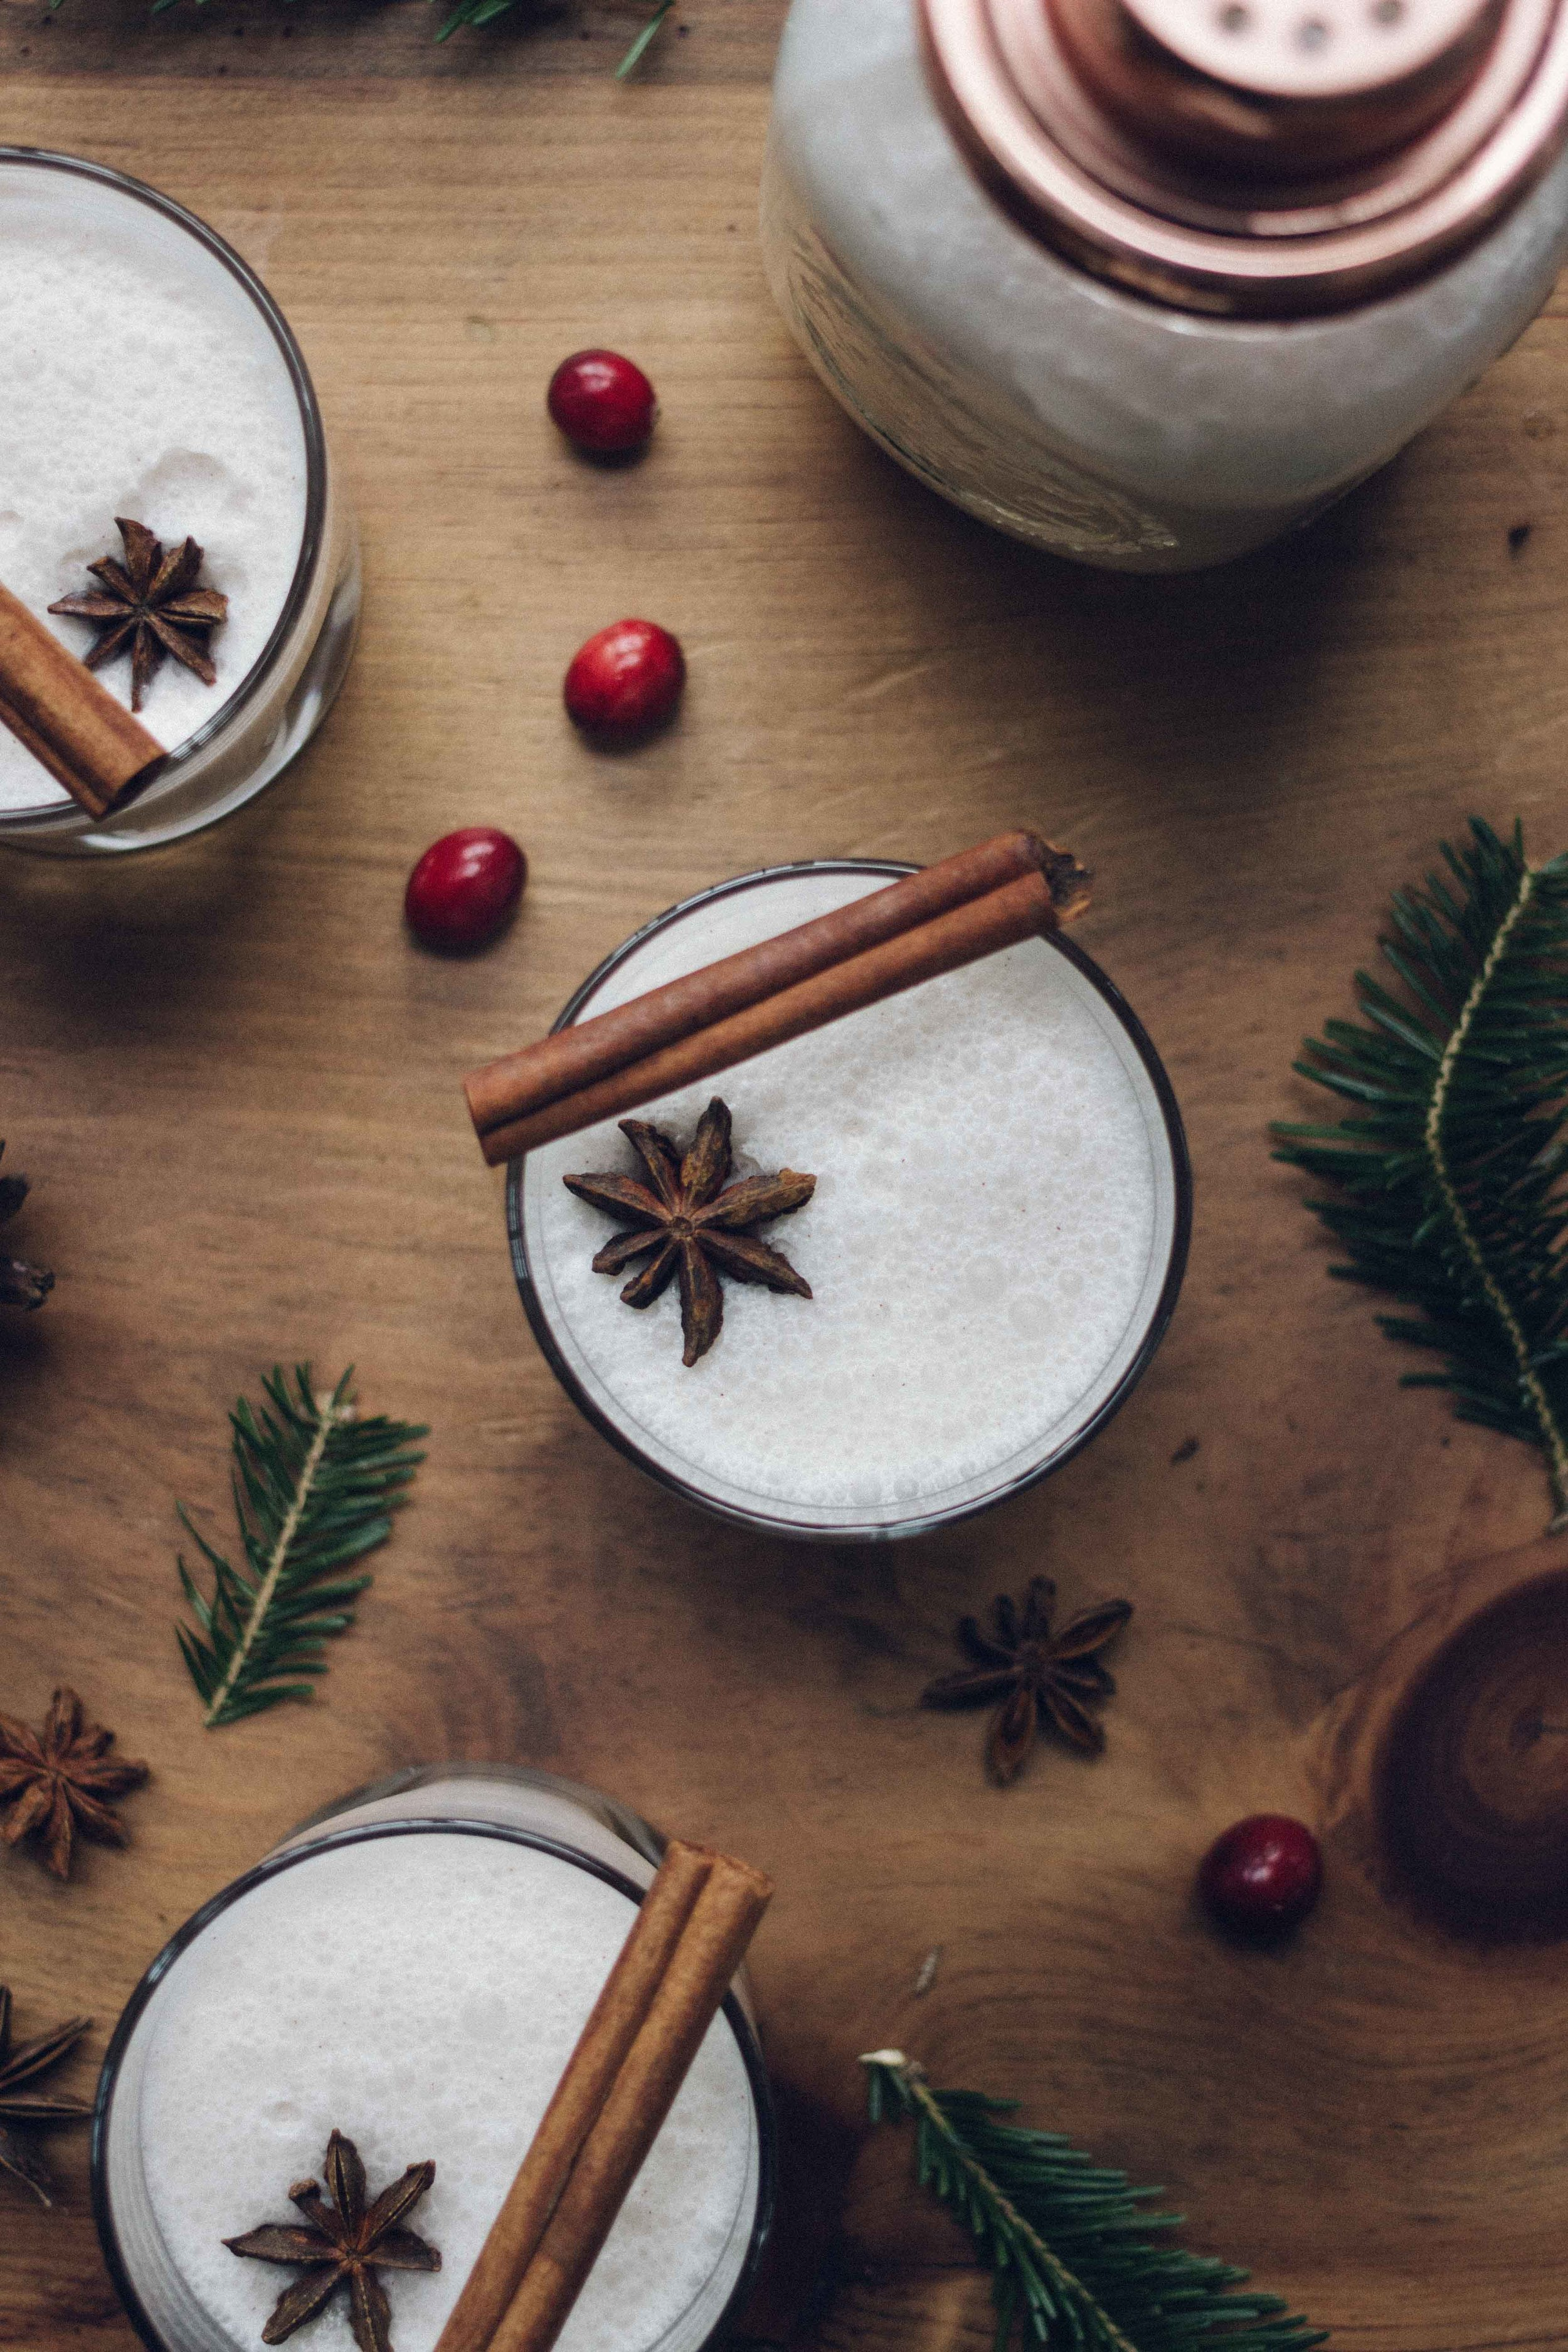 Puerto Rican Lactose Free Coquito - The perfect coconut Christmas cocktail to get you in the festive holiday spirit - The Well Essentials - #puertorico #christmas #holidaycocktails #coquito